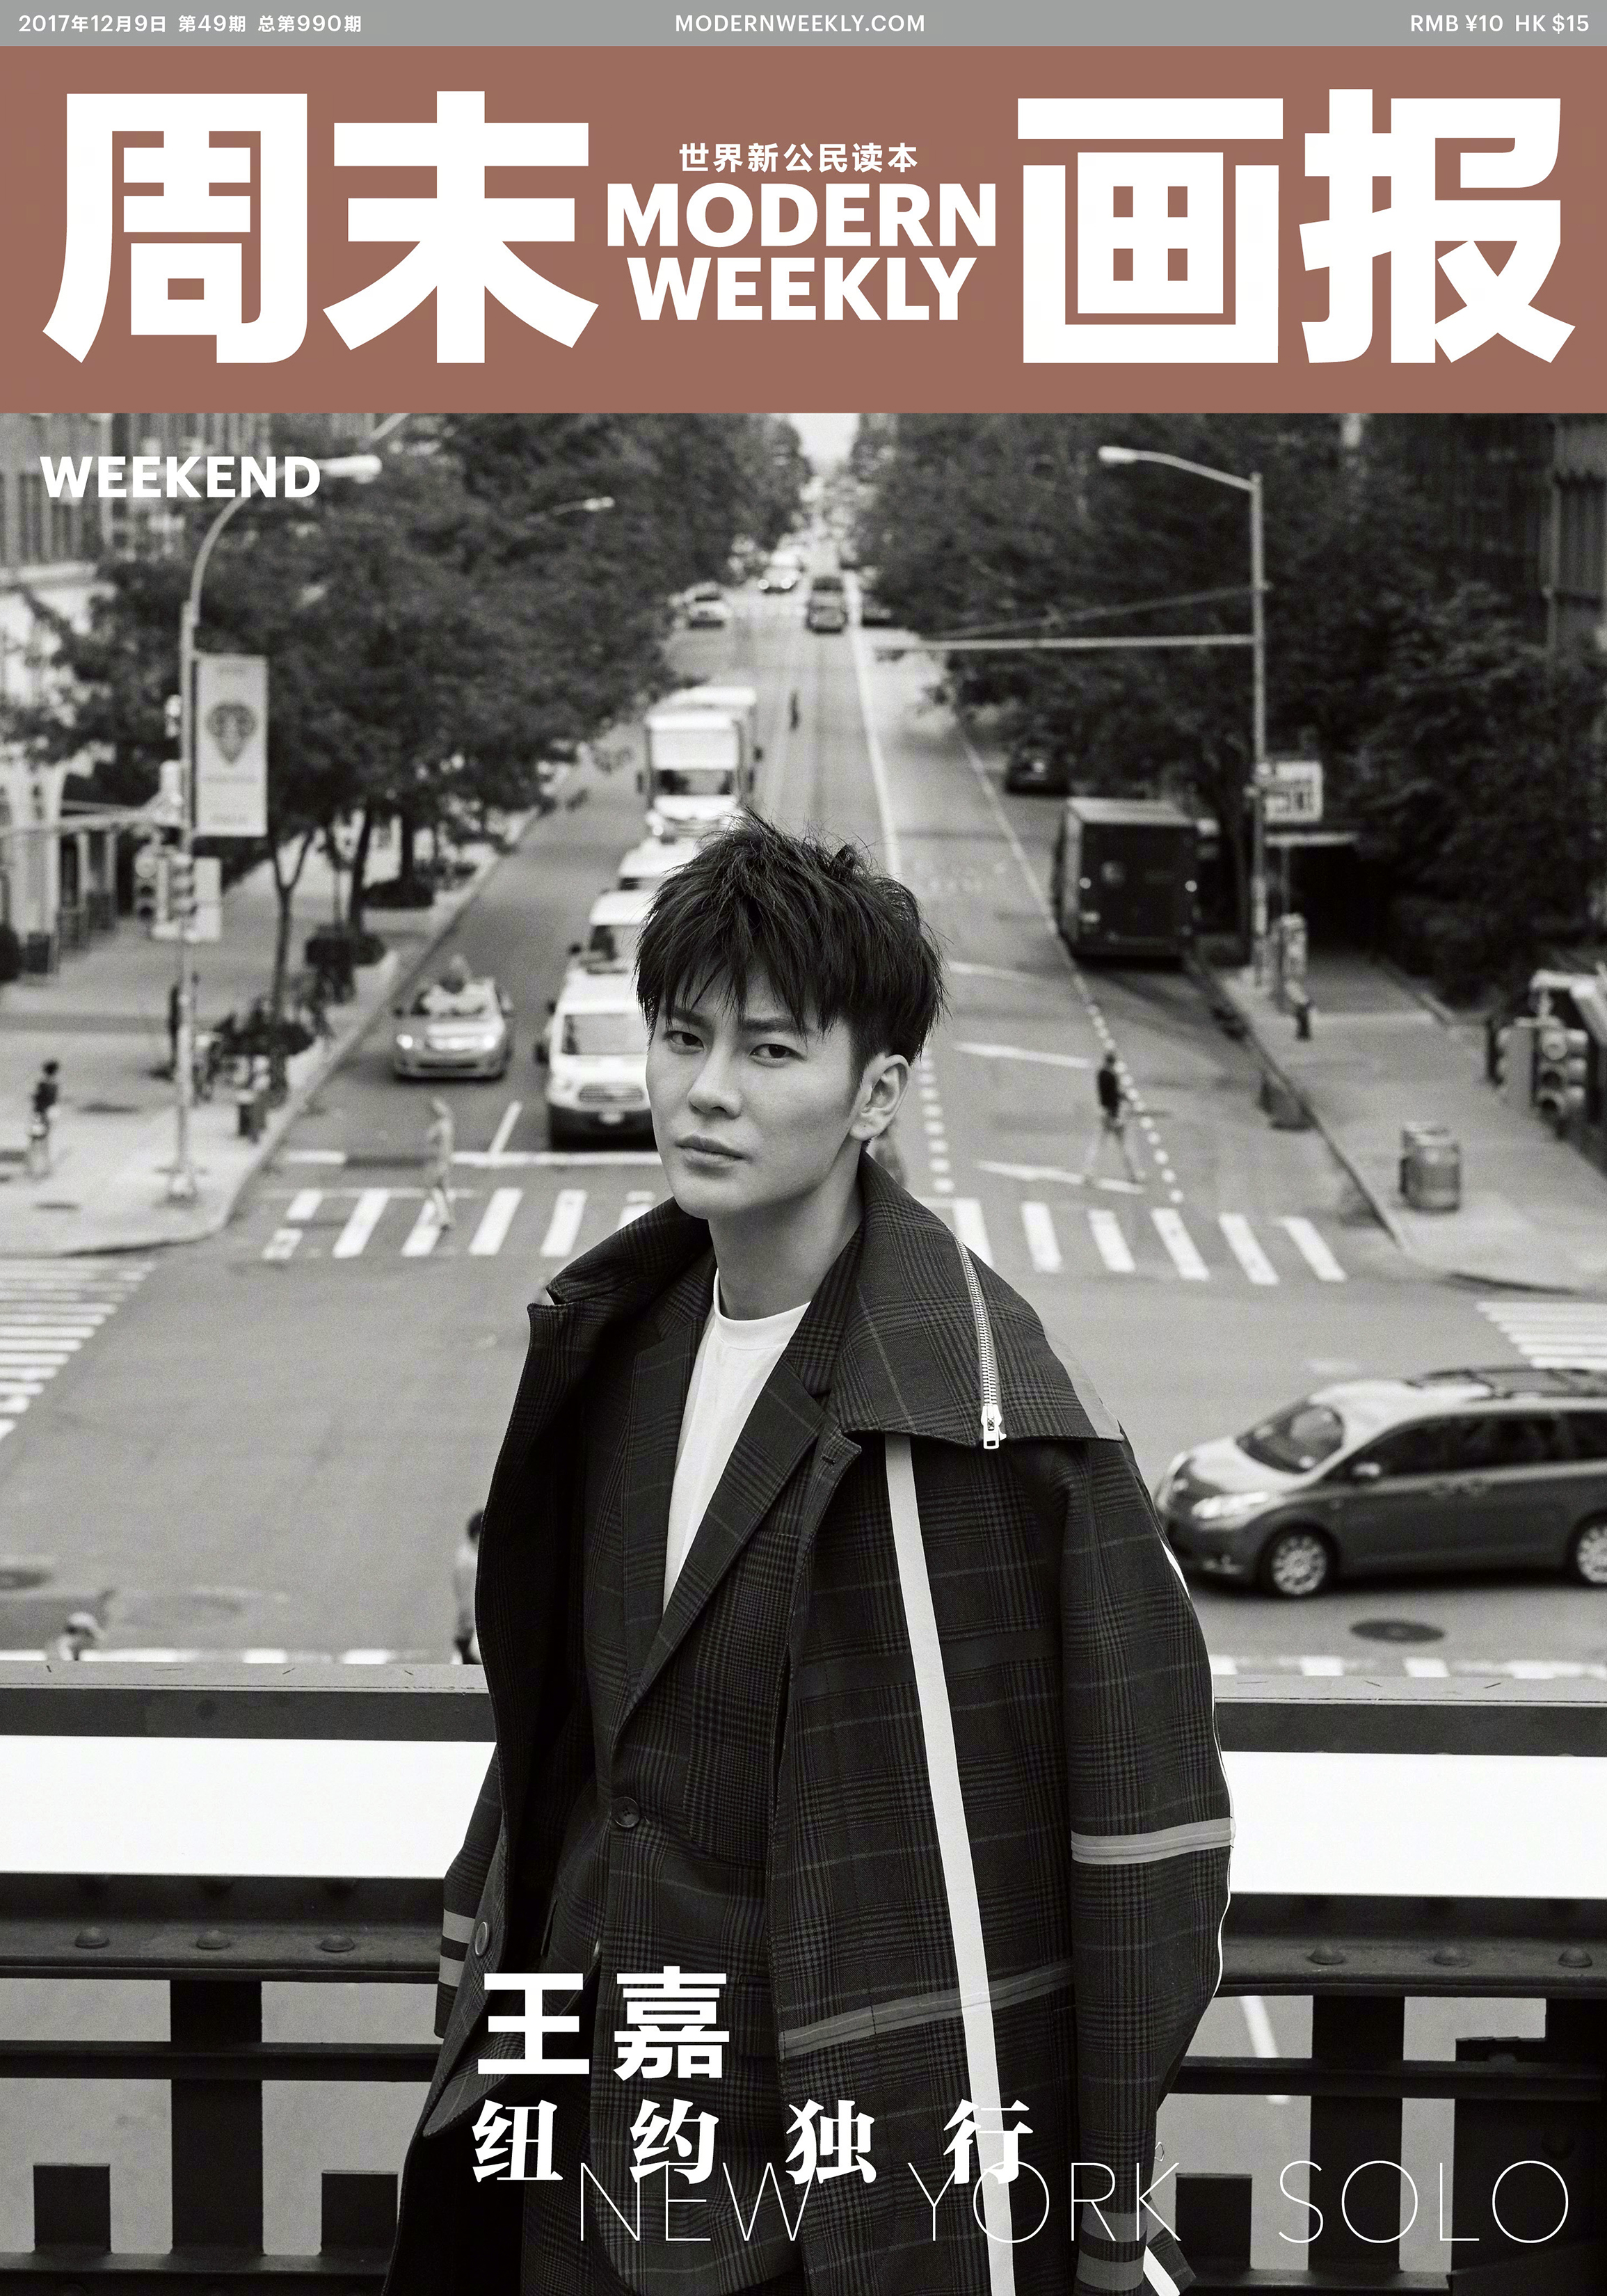 Modern Weekly Cover Story Featuring Jevon Wang